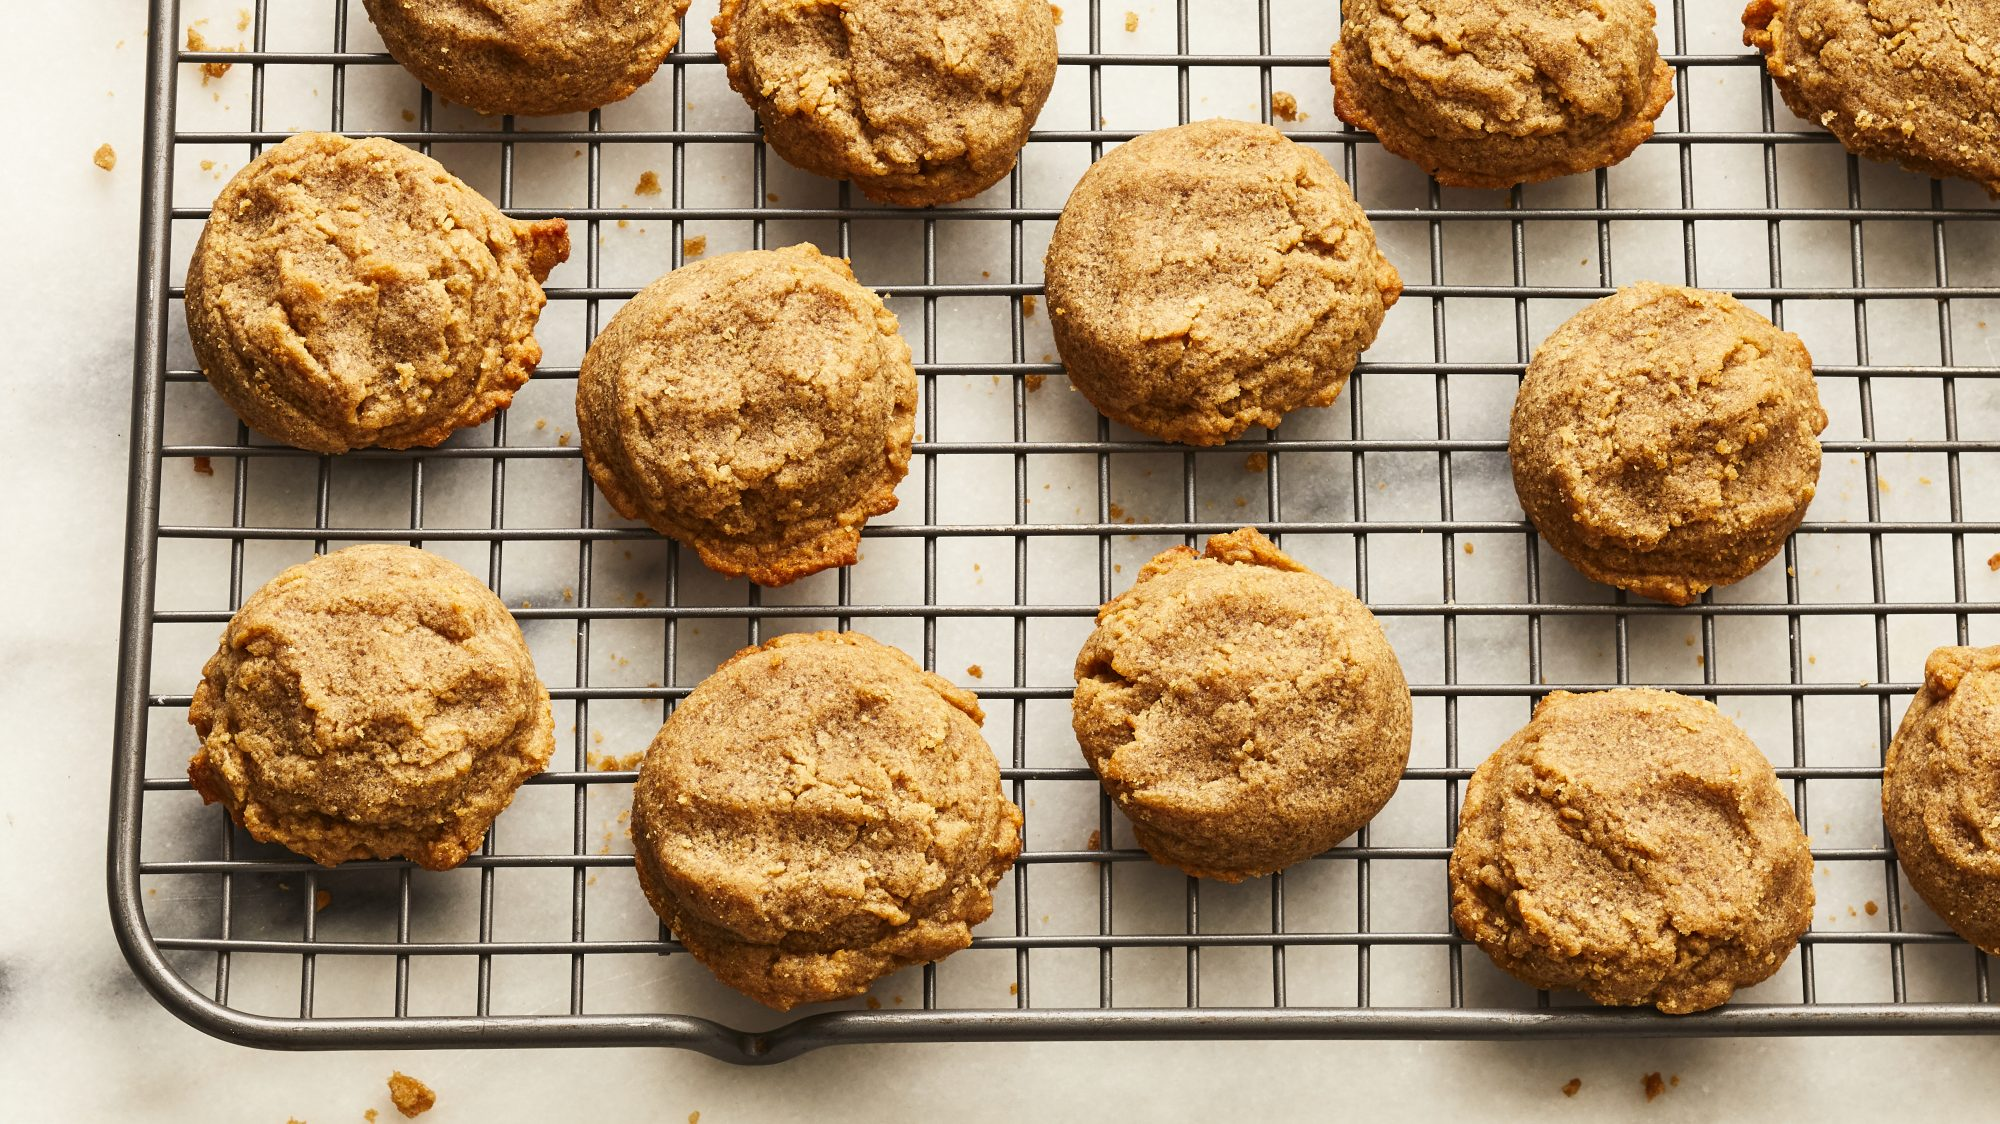 Peanut butter cookies on a wire cooling rack.